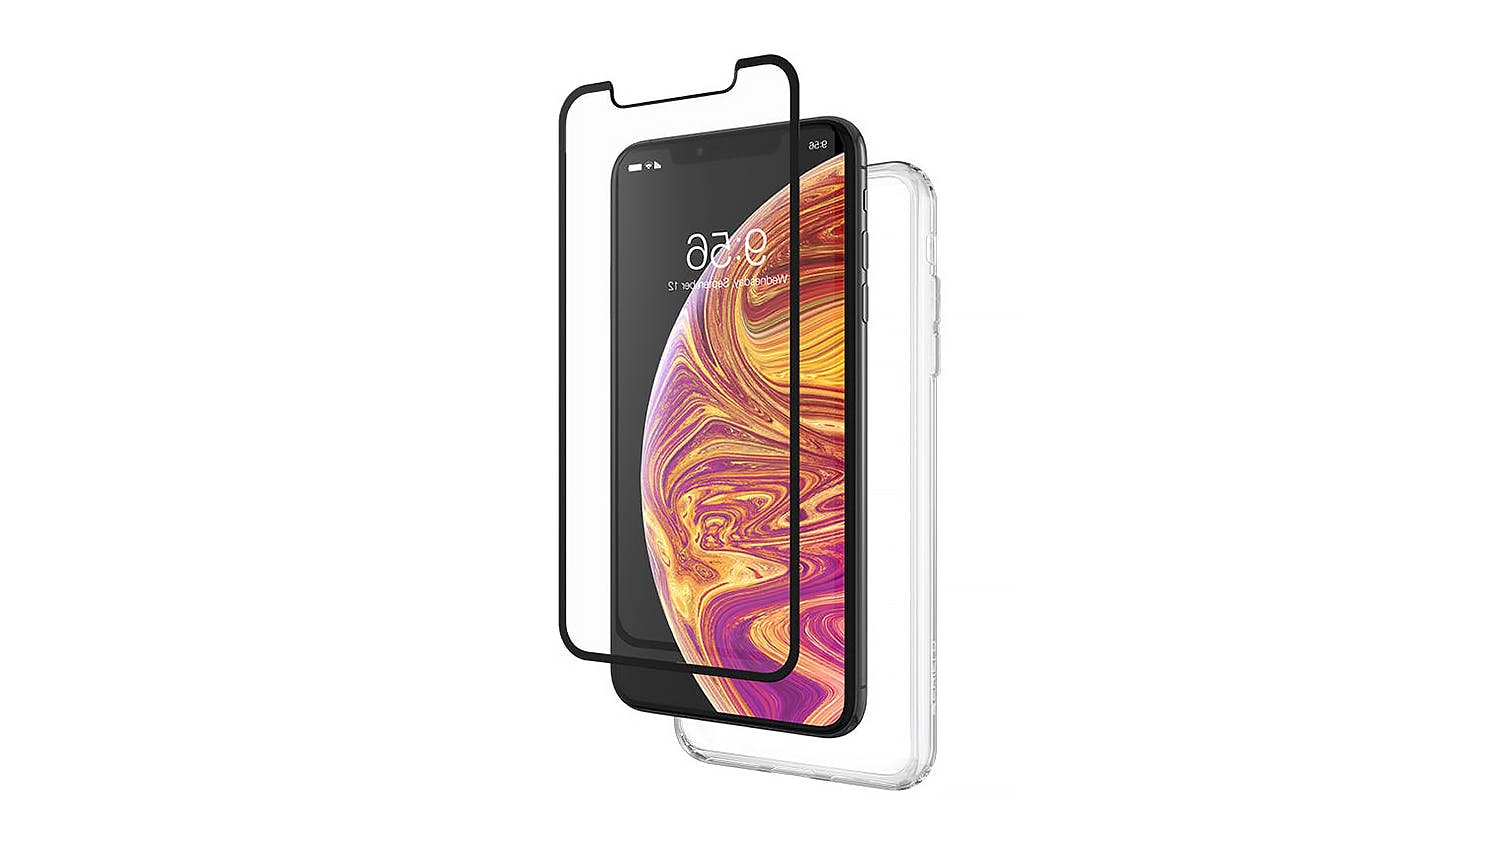 Zagg InvisibleShield Glass+ 360 Screen Protector for iPhone XS Max